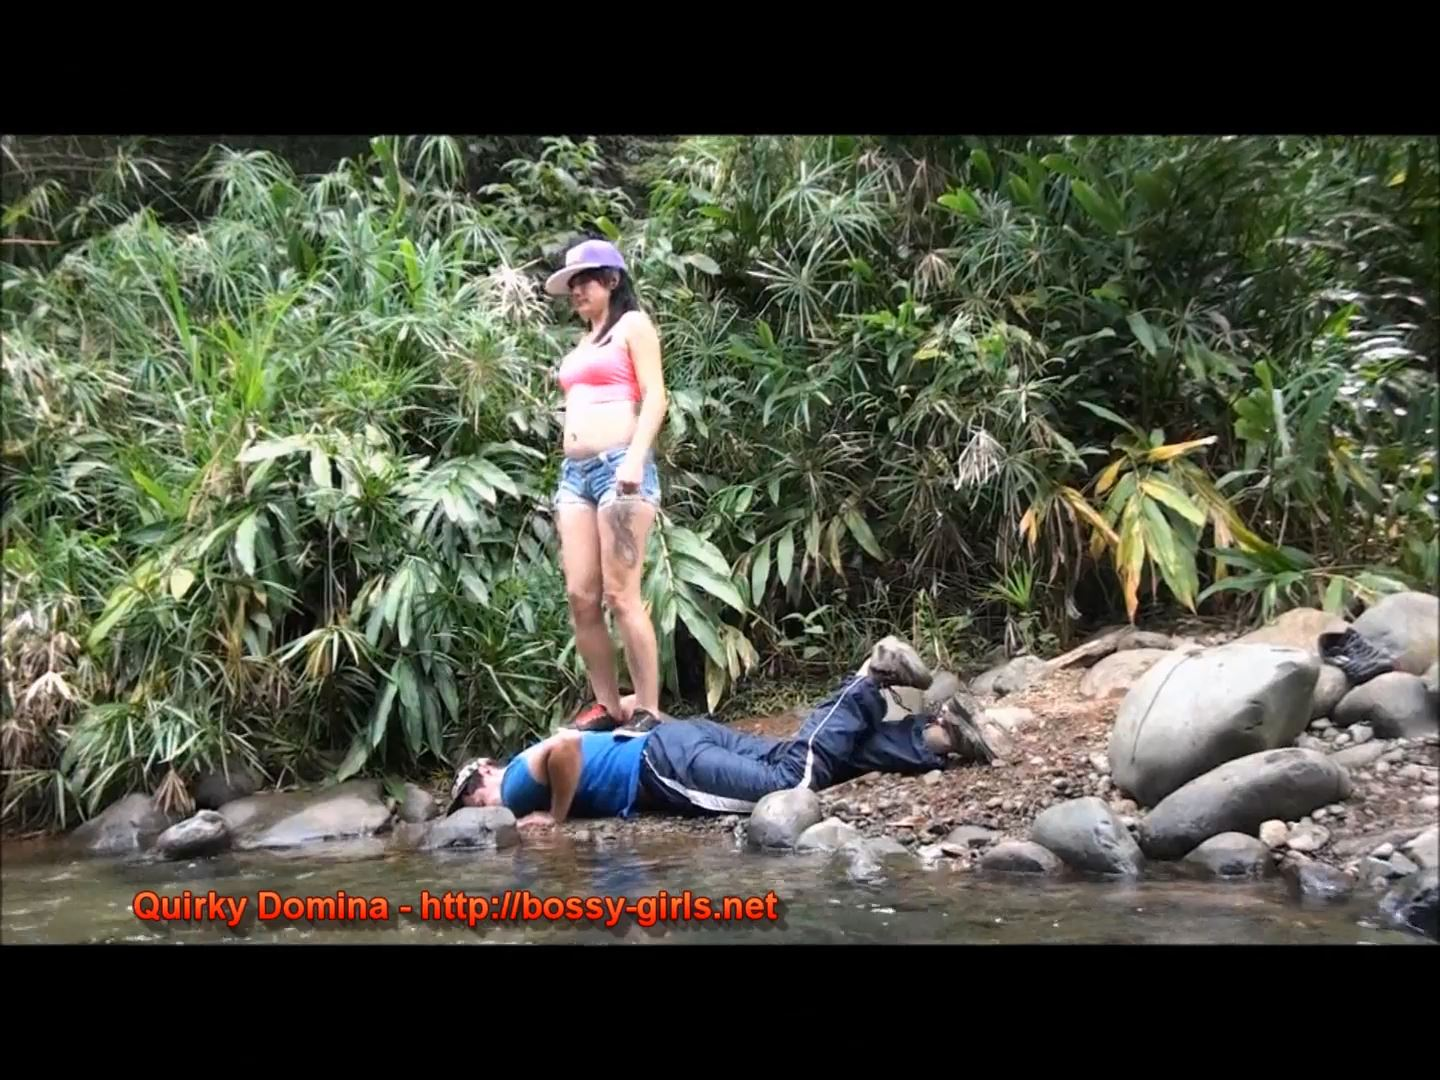 Mistress Yaza In Scene: QUIRKY DOMINA 02 Riveside Sports Flog & Trample - BOSSY-GIRLS - FULL HD/1080p/MP4